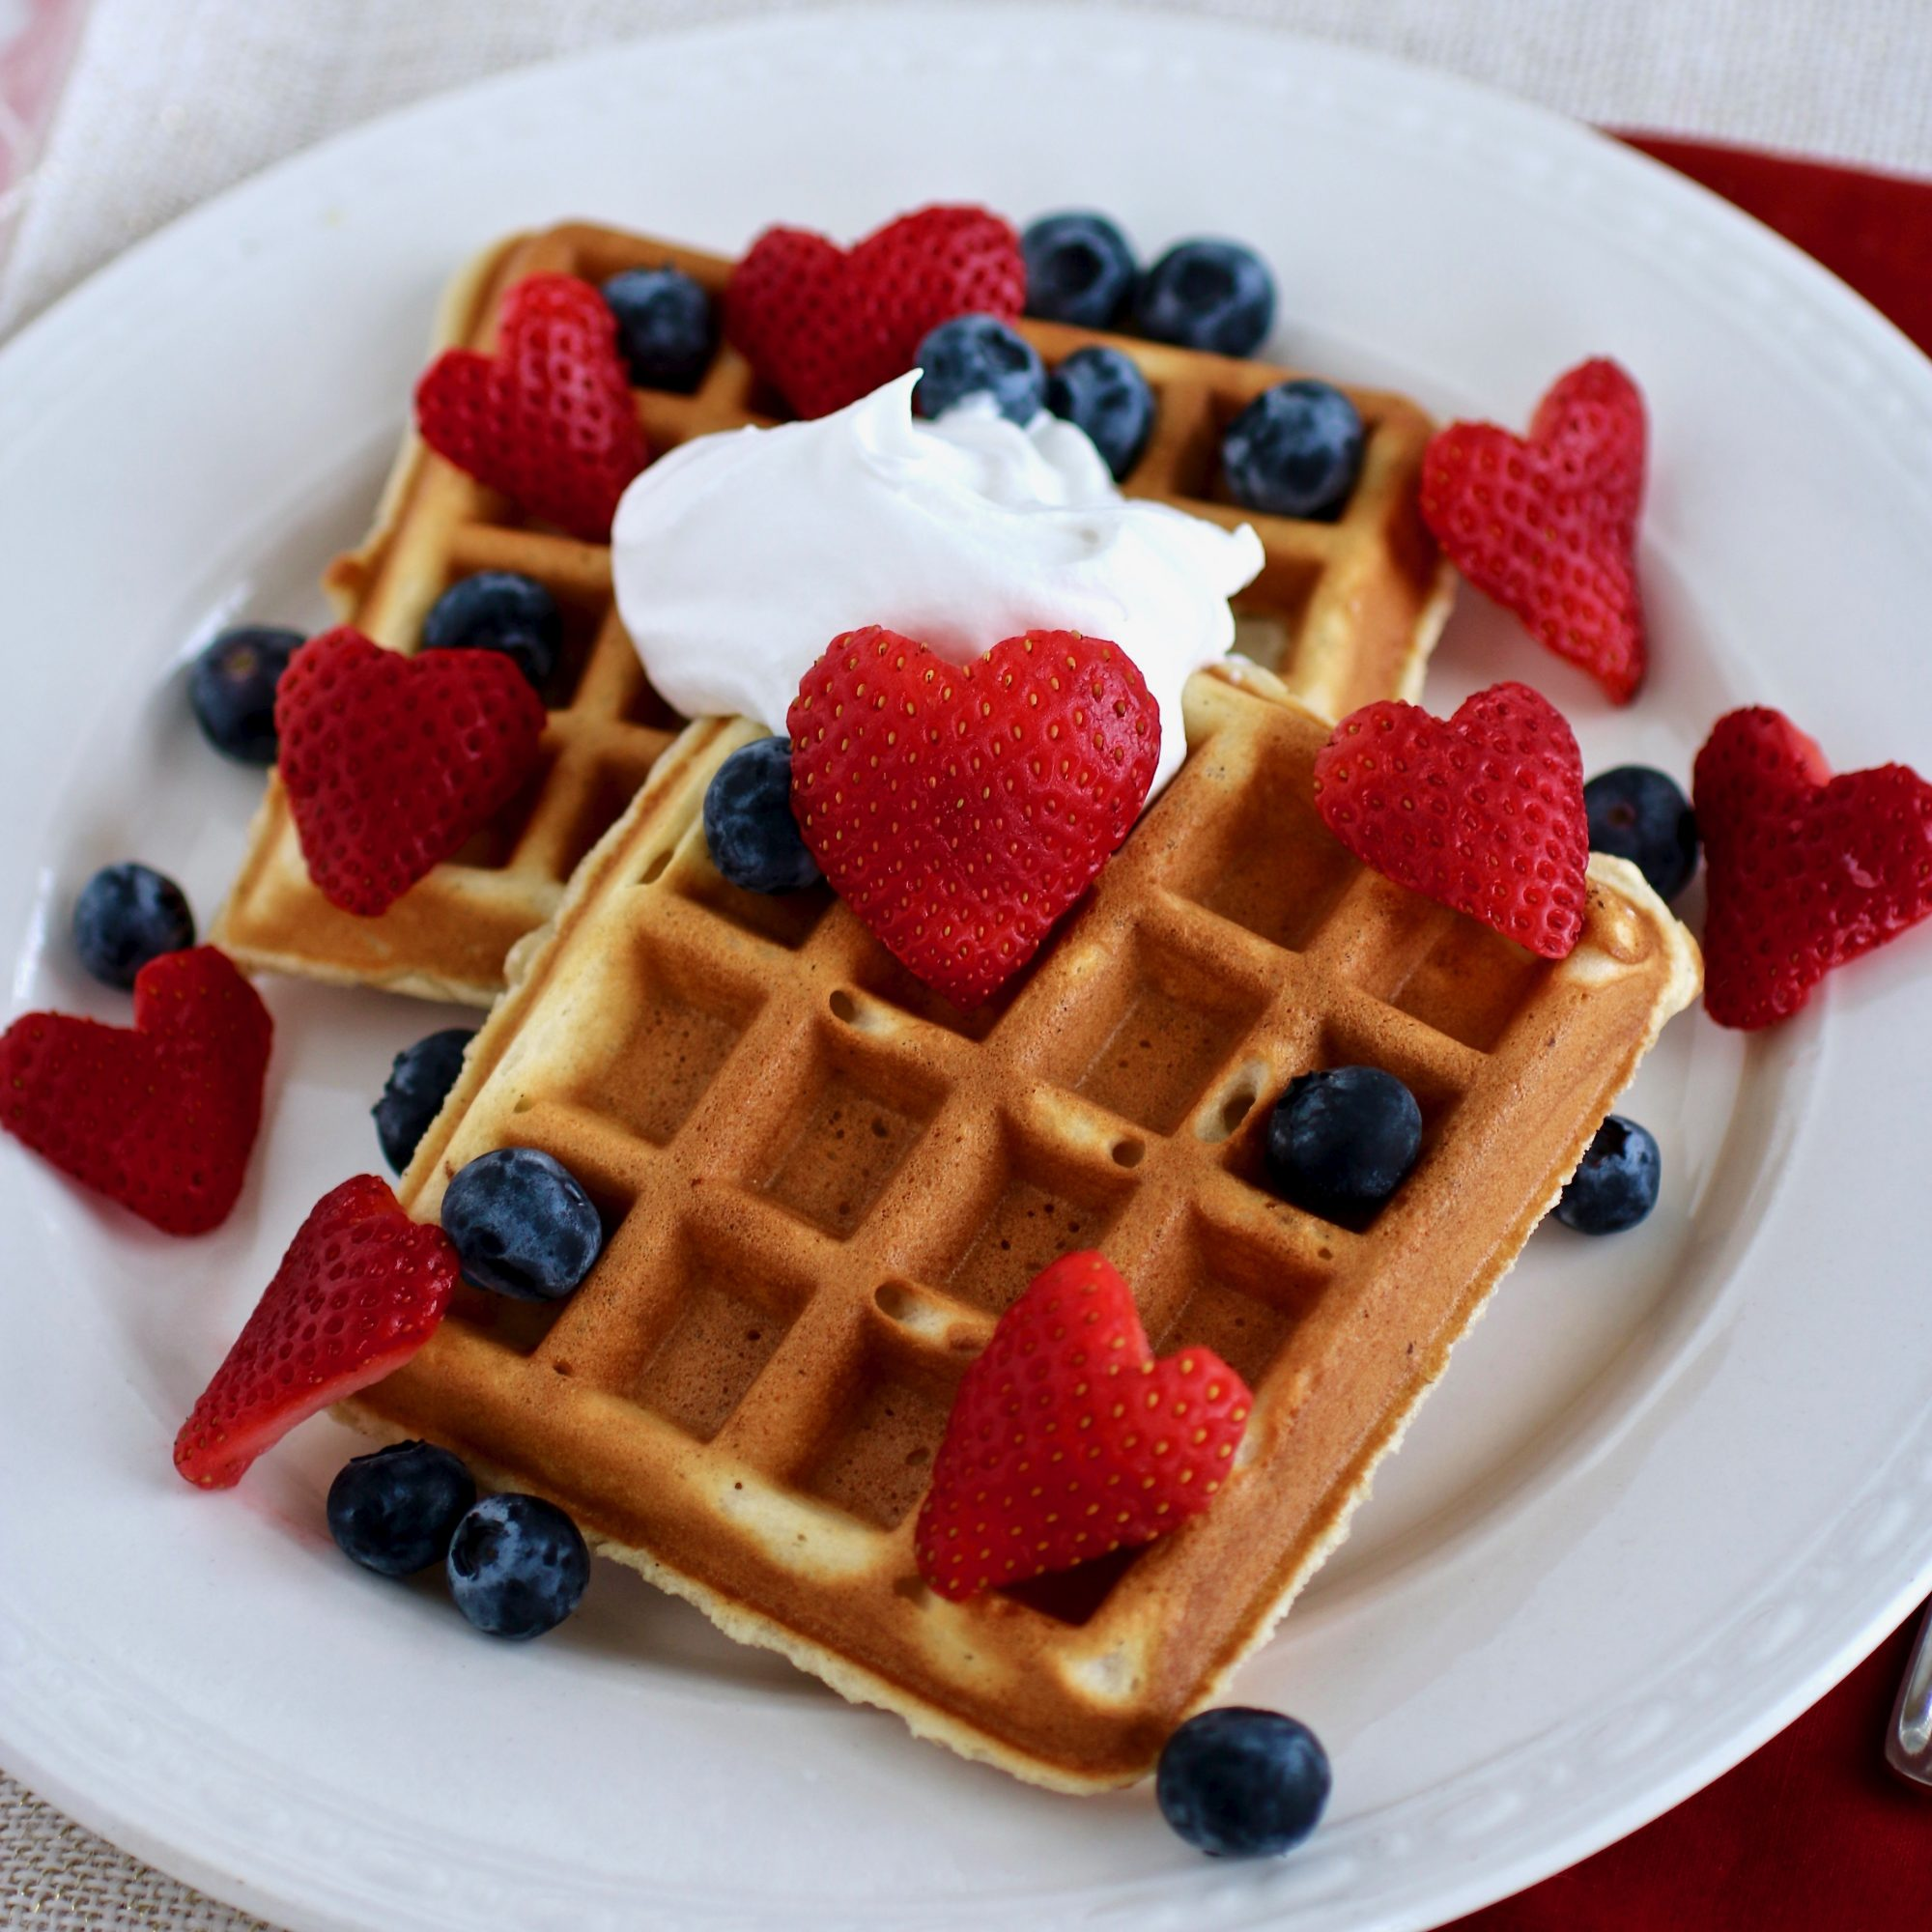 Classic Waffles topped with fresh strawberries, blueberries, and whipped cream